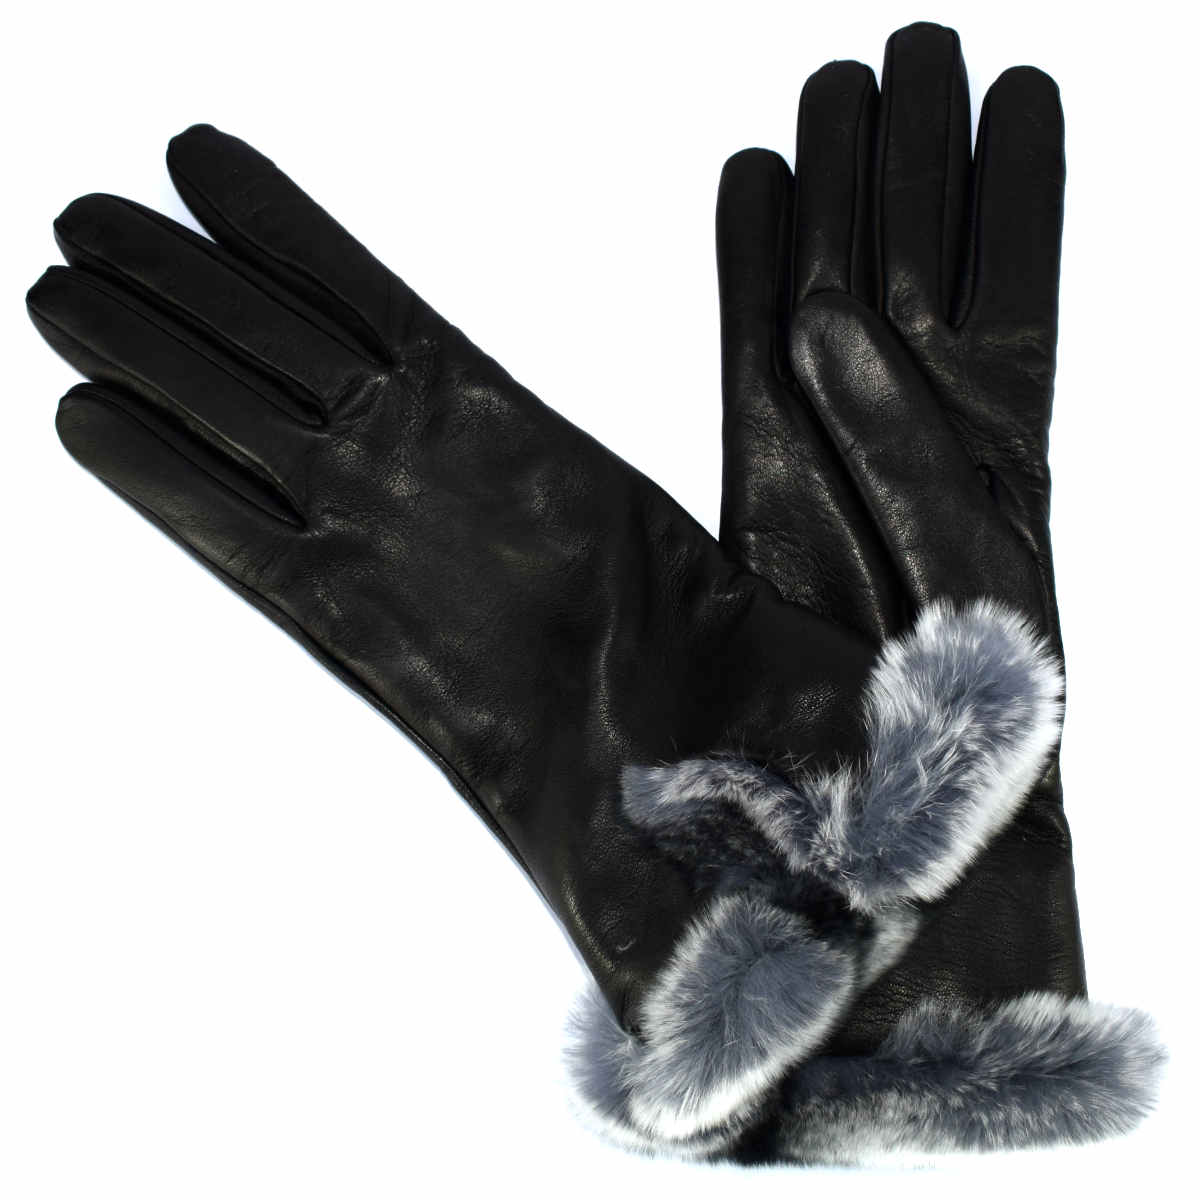 8M21 WOMAN GLOVES WITH FUR by Bottega Fiorentina